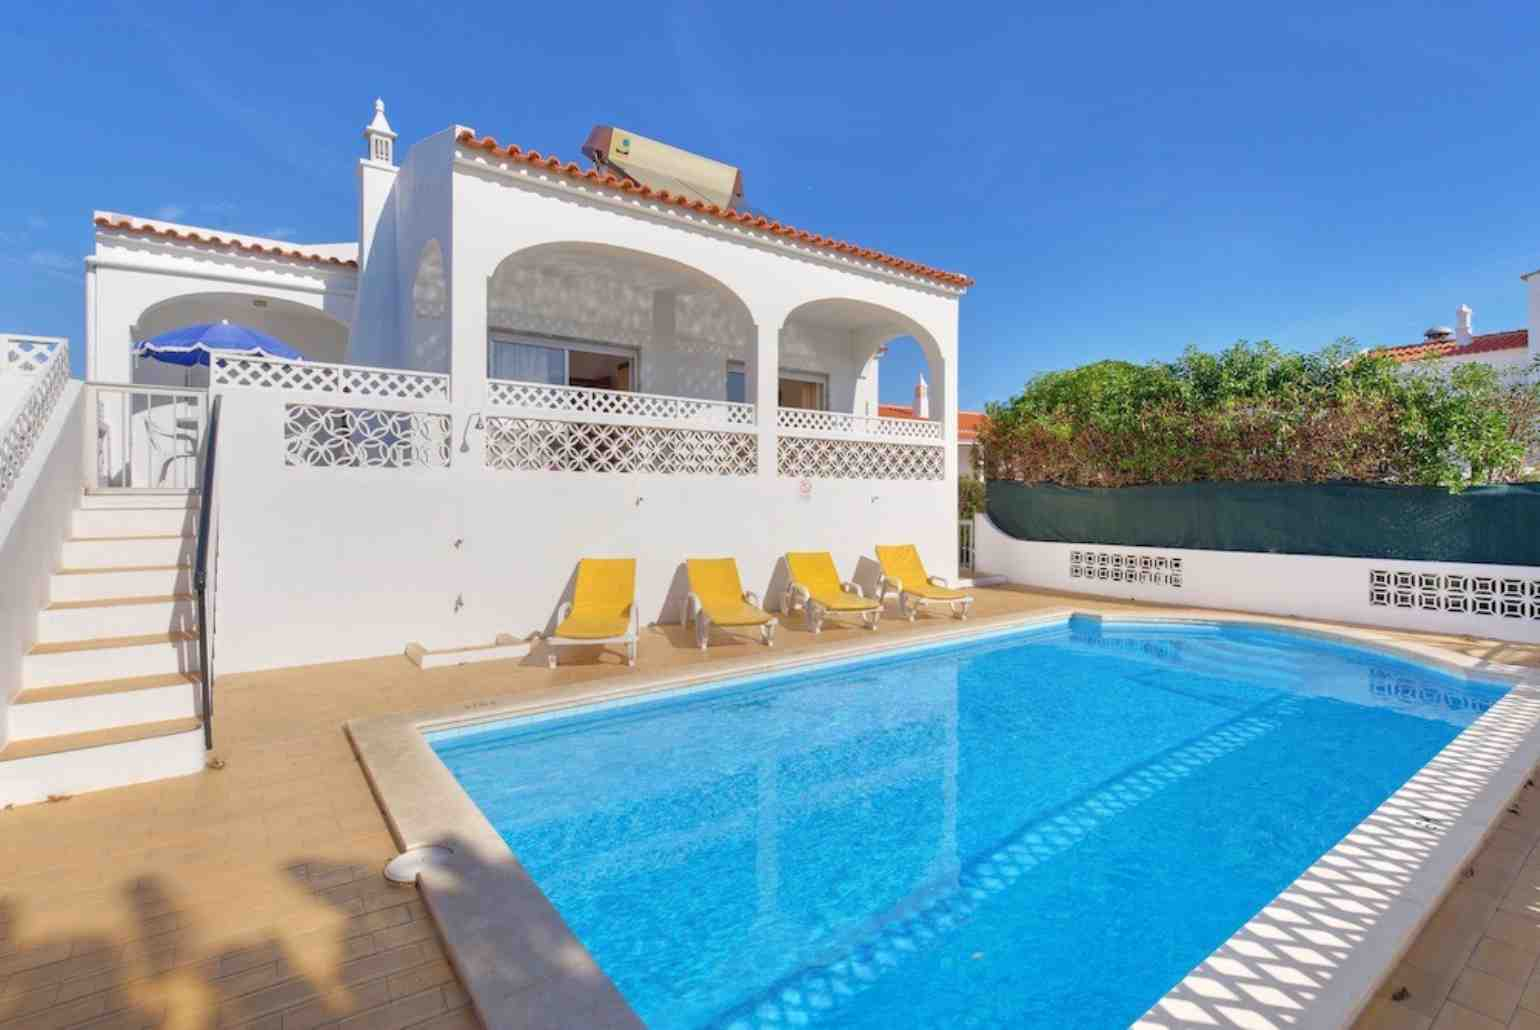 Beach Villa Barreto Albufeira Algarve Rentals With